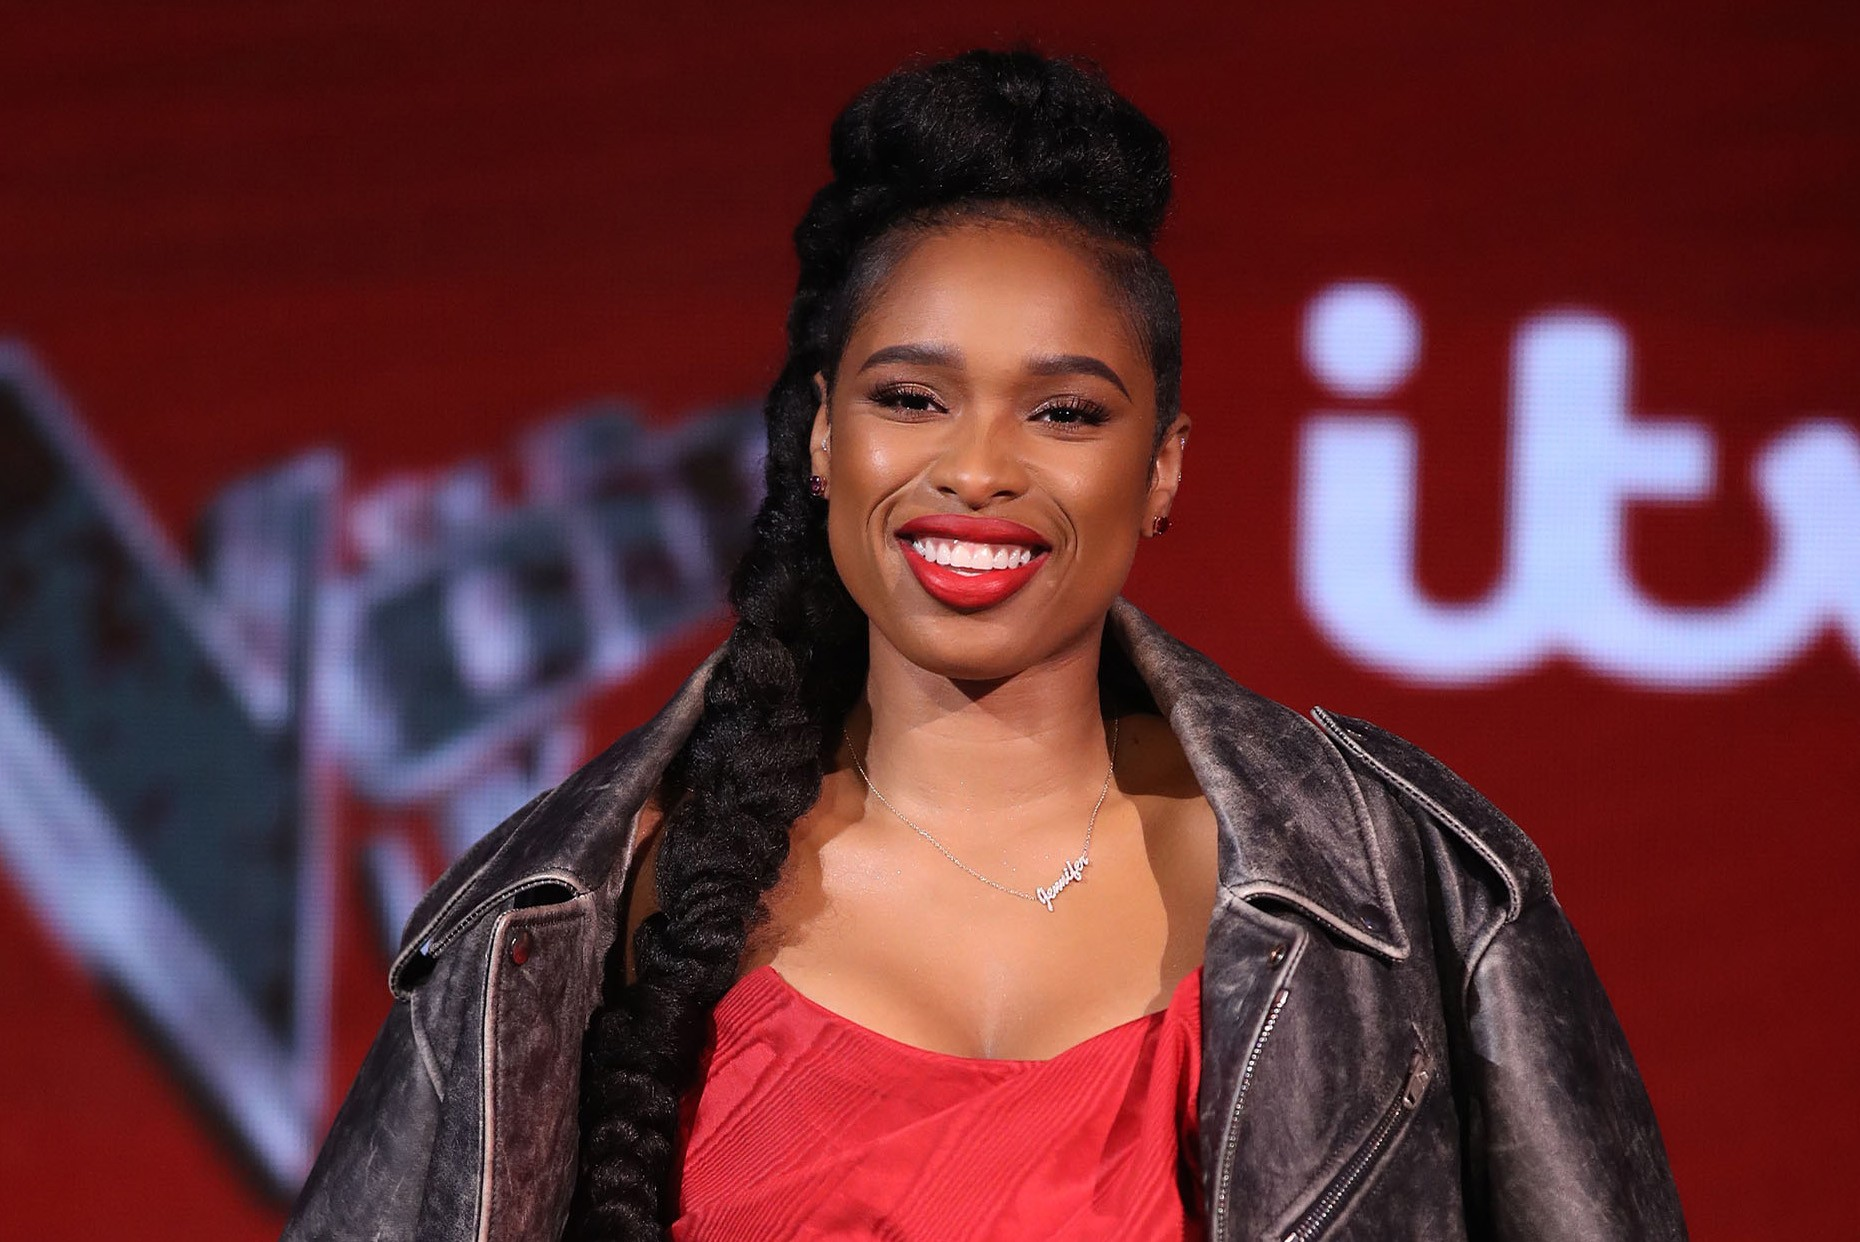 BOREHAMWOOD, ENGLAND - APRIL 05:  Jennifer Hudson attends the pre-final event for 'The Voice' at Elstree Studios on April 5, 2018 in Borehamwood, England.  (Photo by Mike Marsland/Mike Marsland/WireImage)